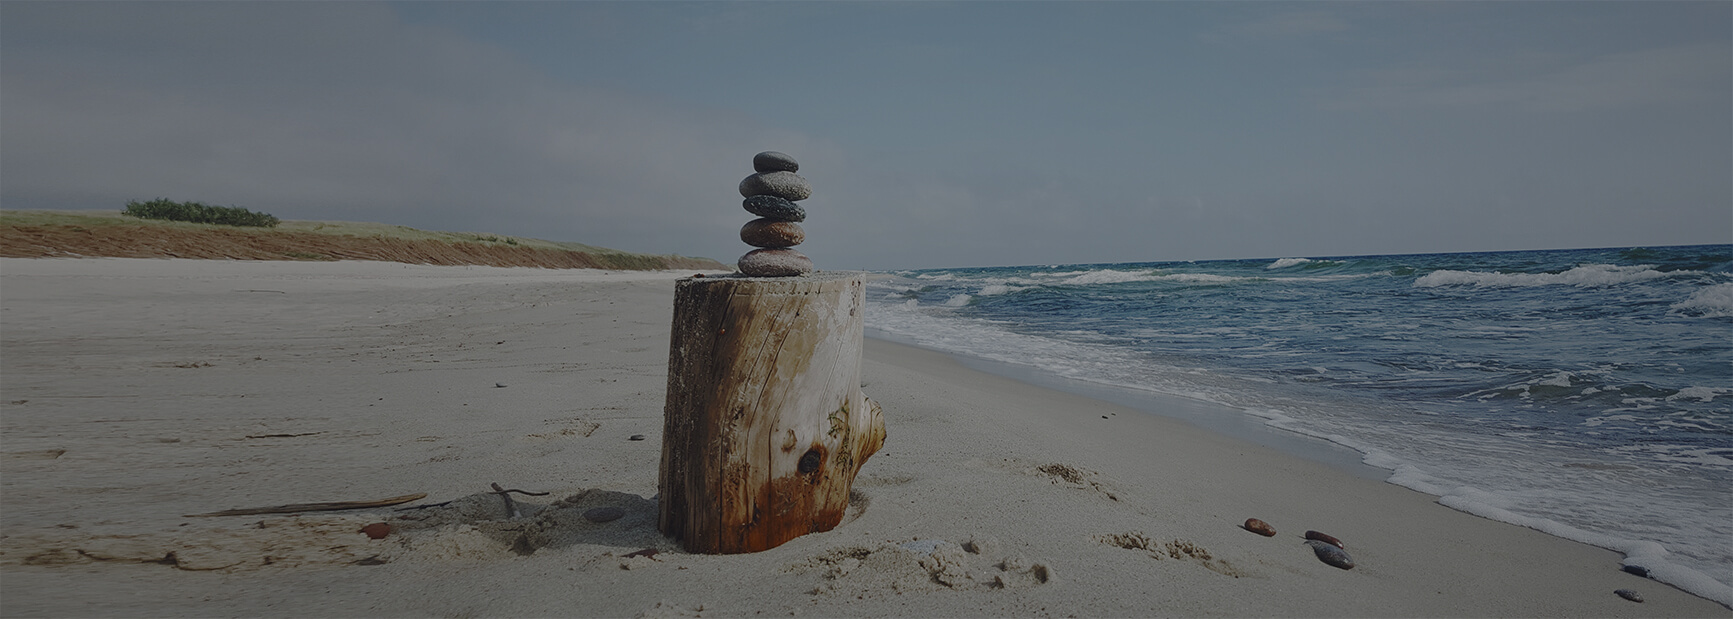 Photo of cairn on beach